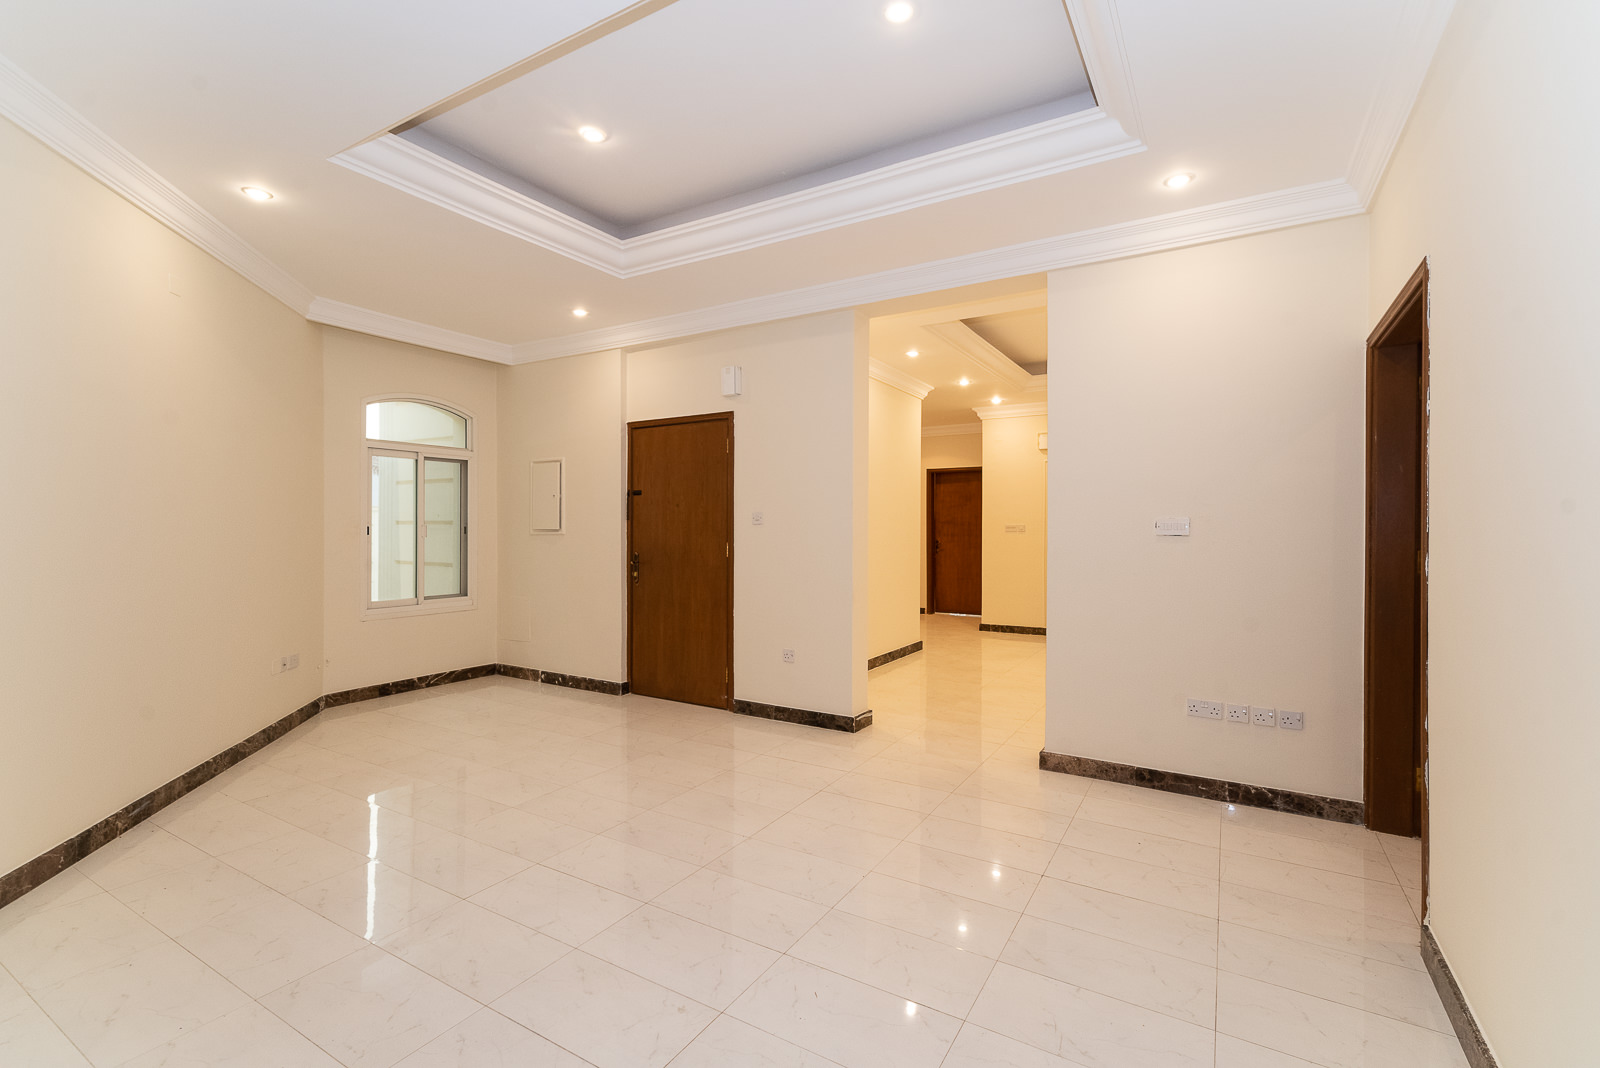 Abu Al Hasania – lovely, spacious, unfurnished, three bedroom floor w/terrace